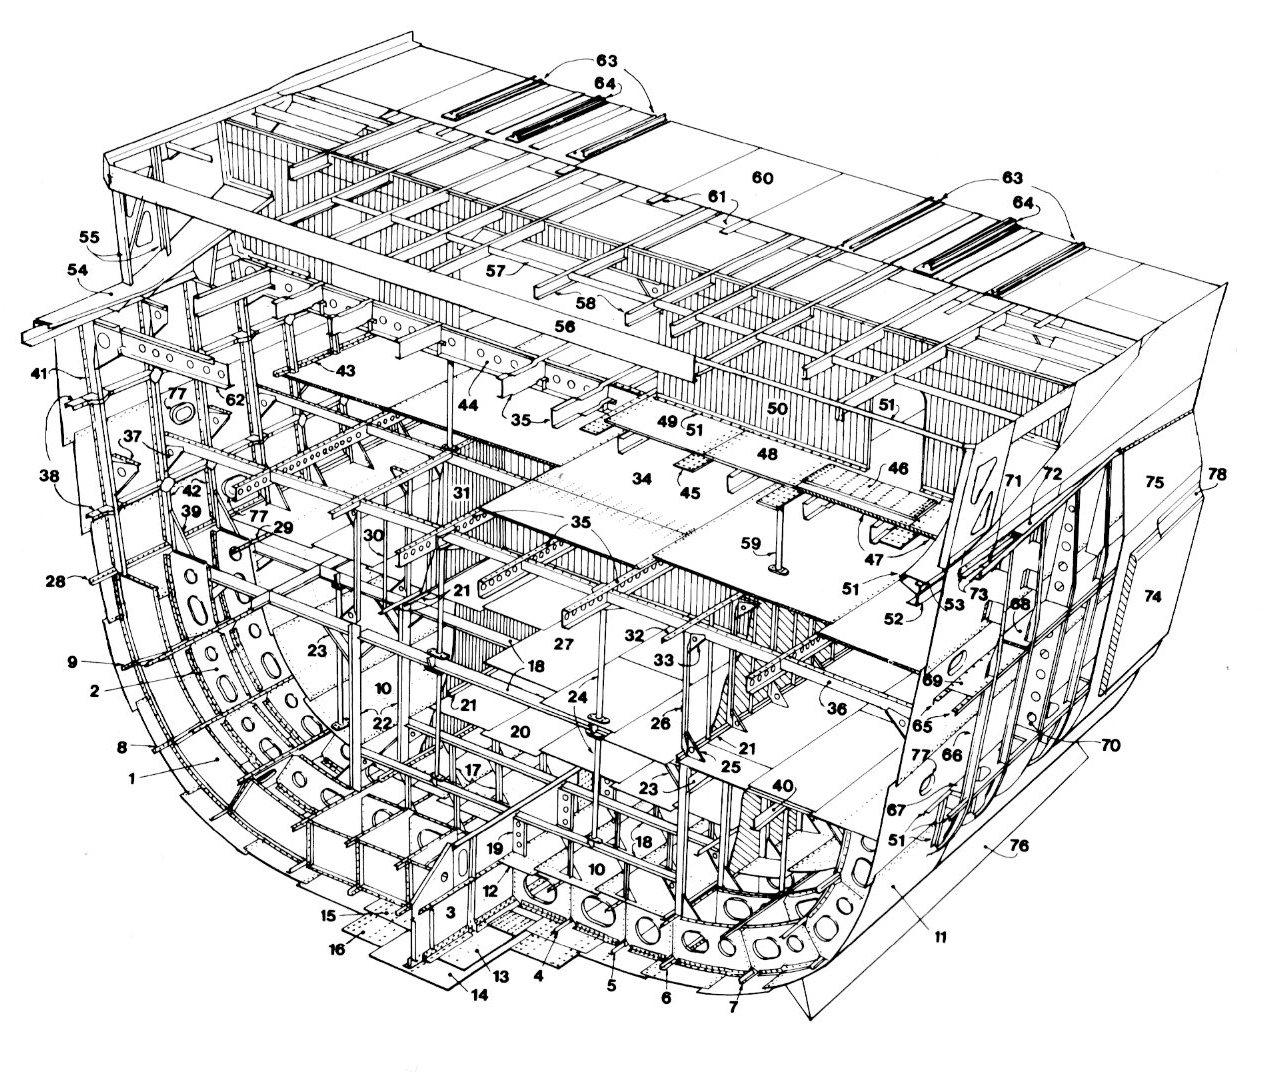 Structure Of A World War Ii Cruiser